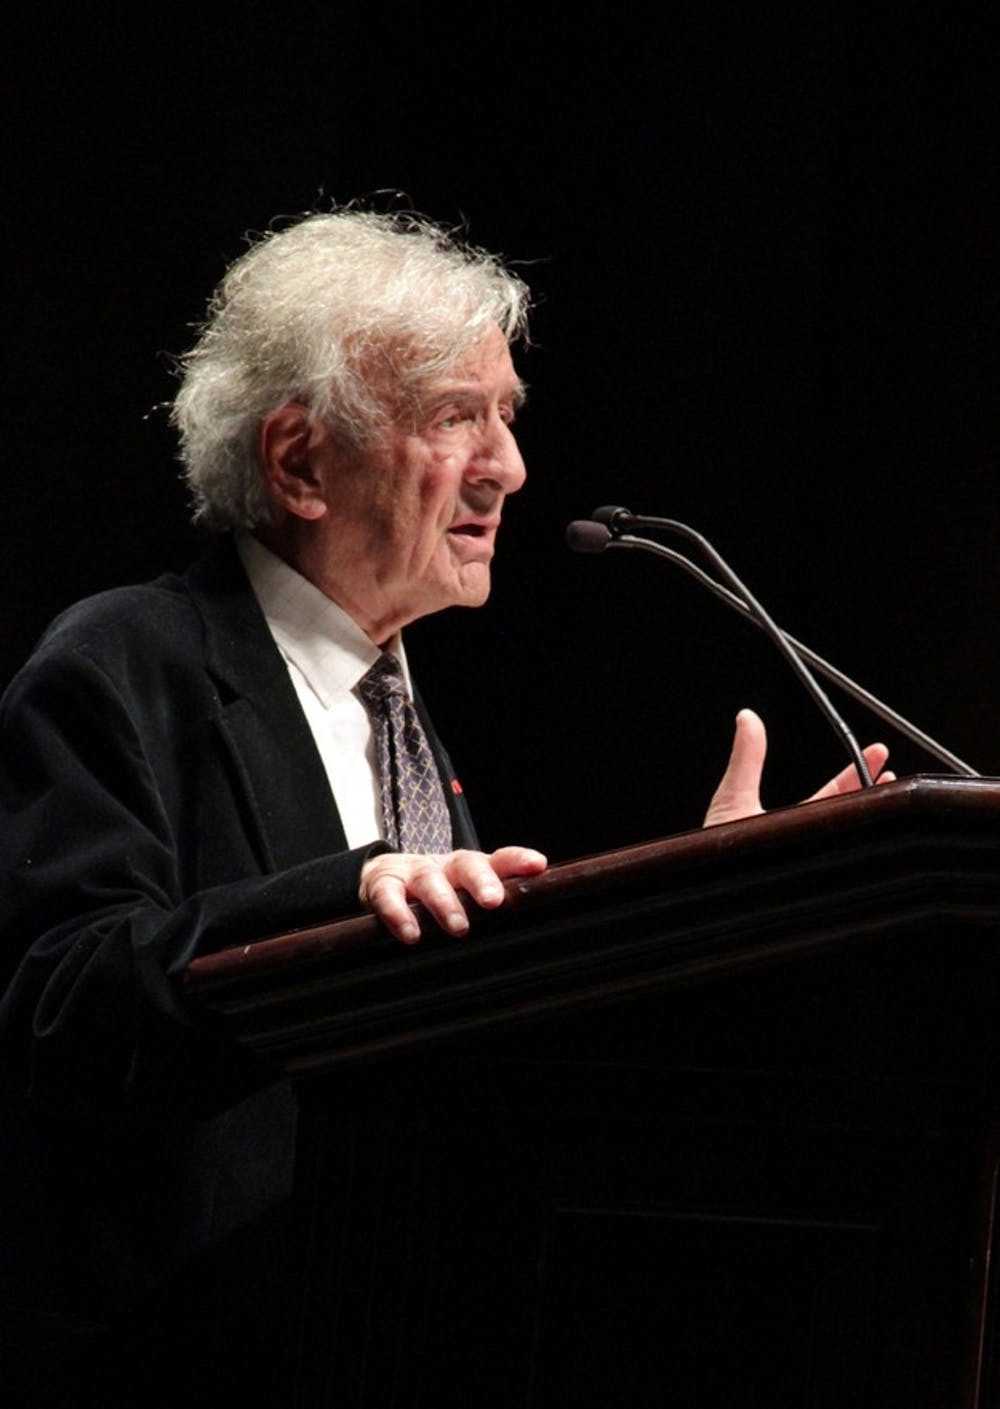 Elie Wiesel: Nothing comes out of indifference